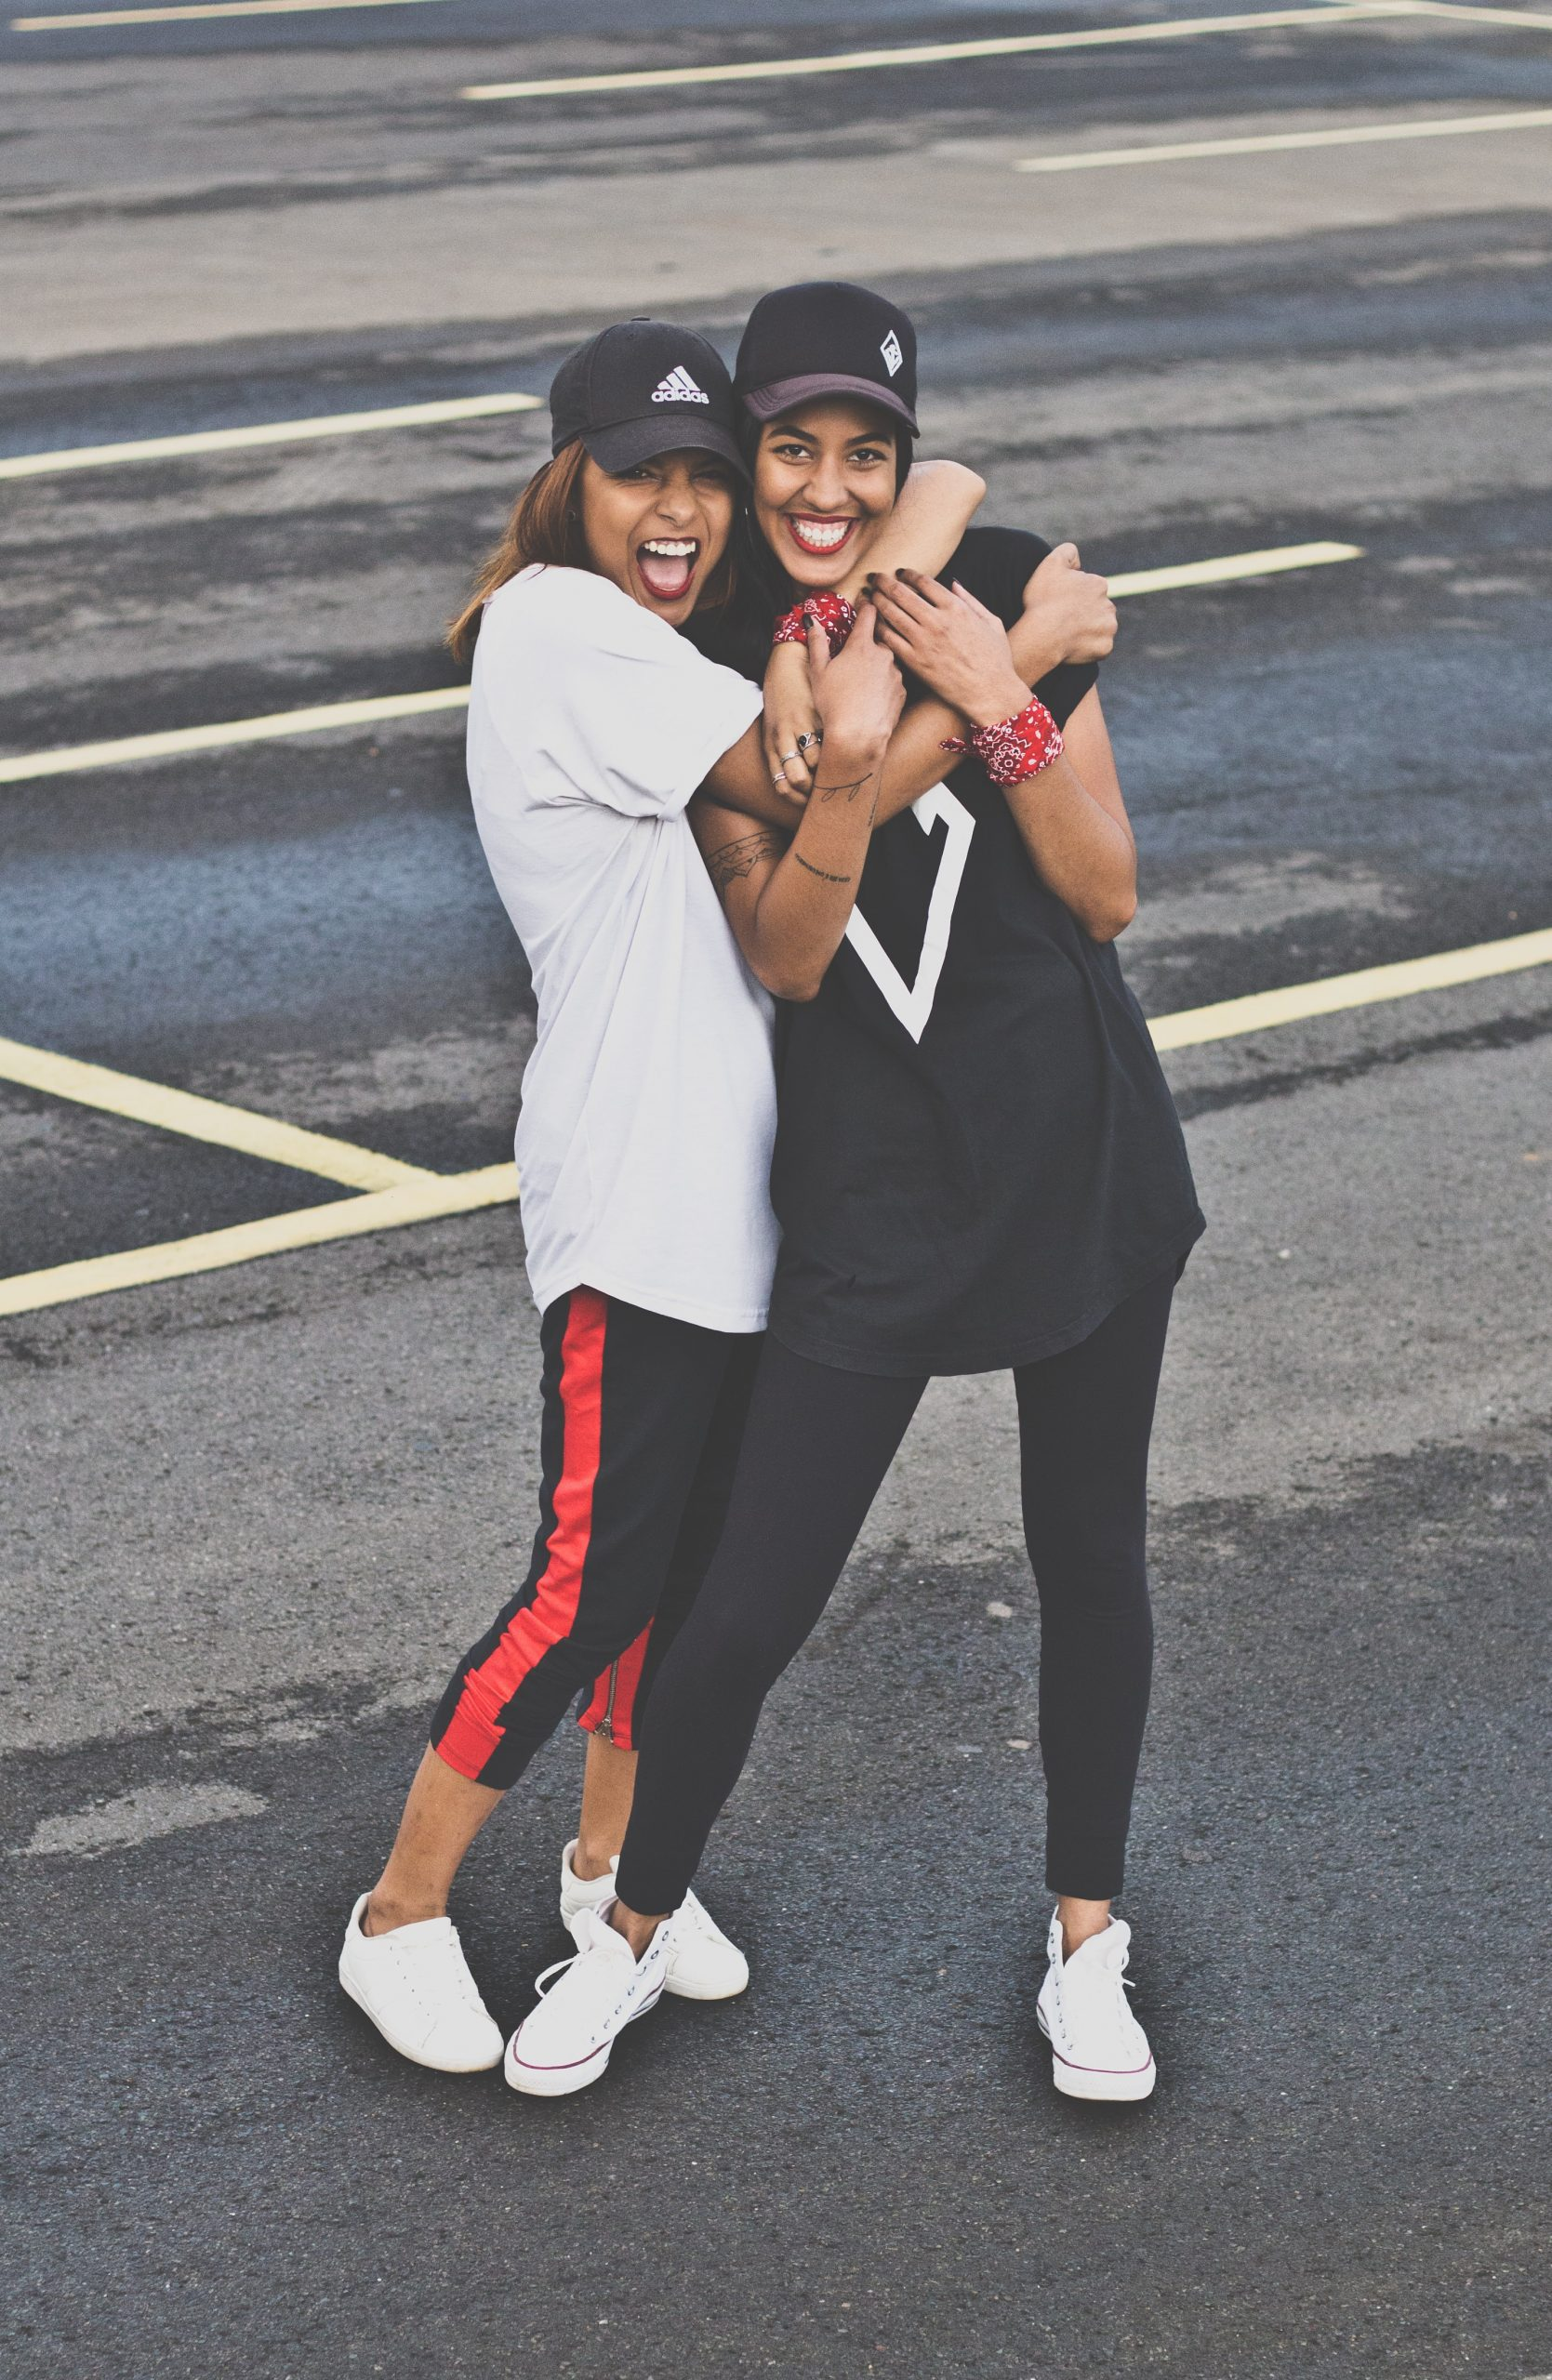 two women standing together in street